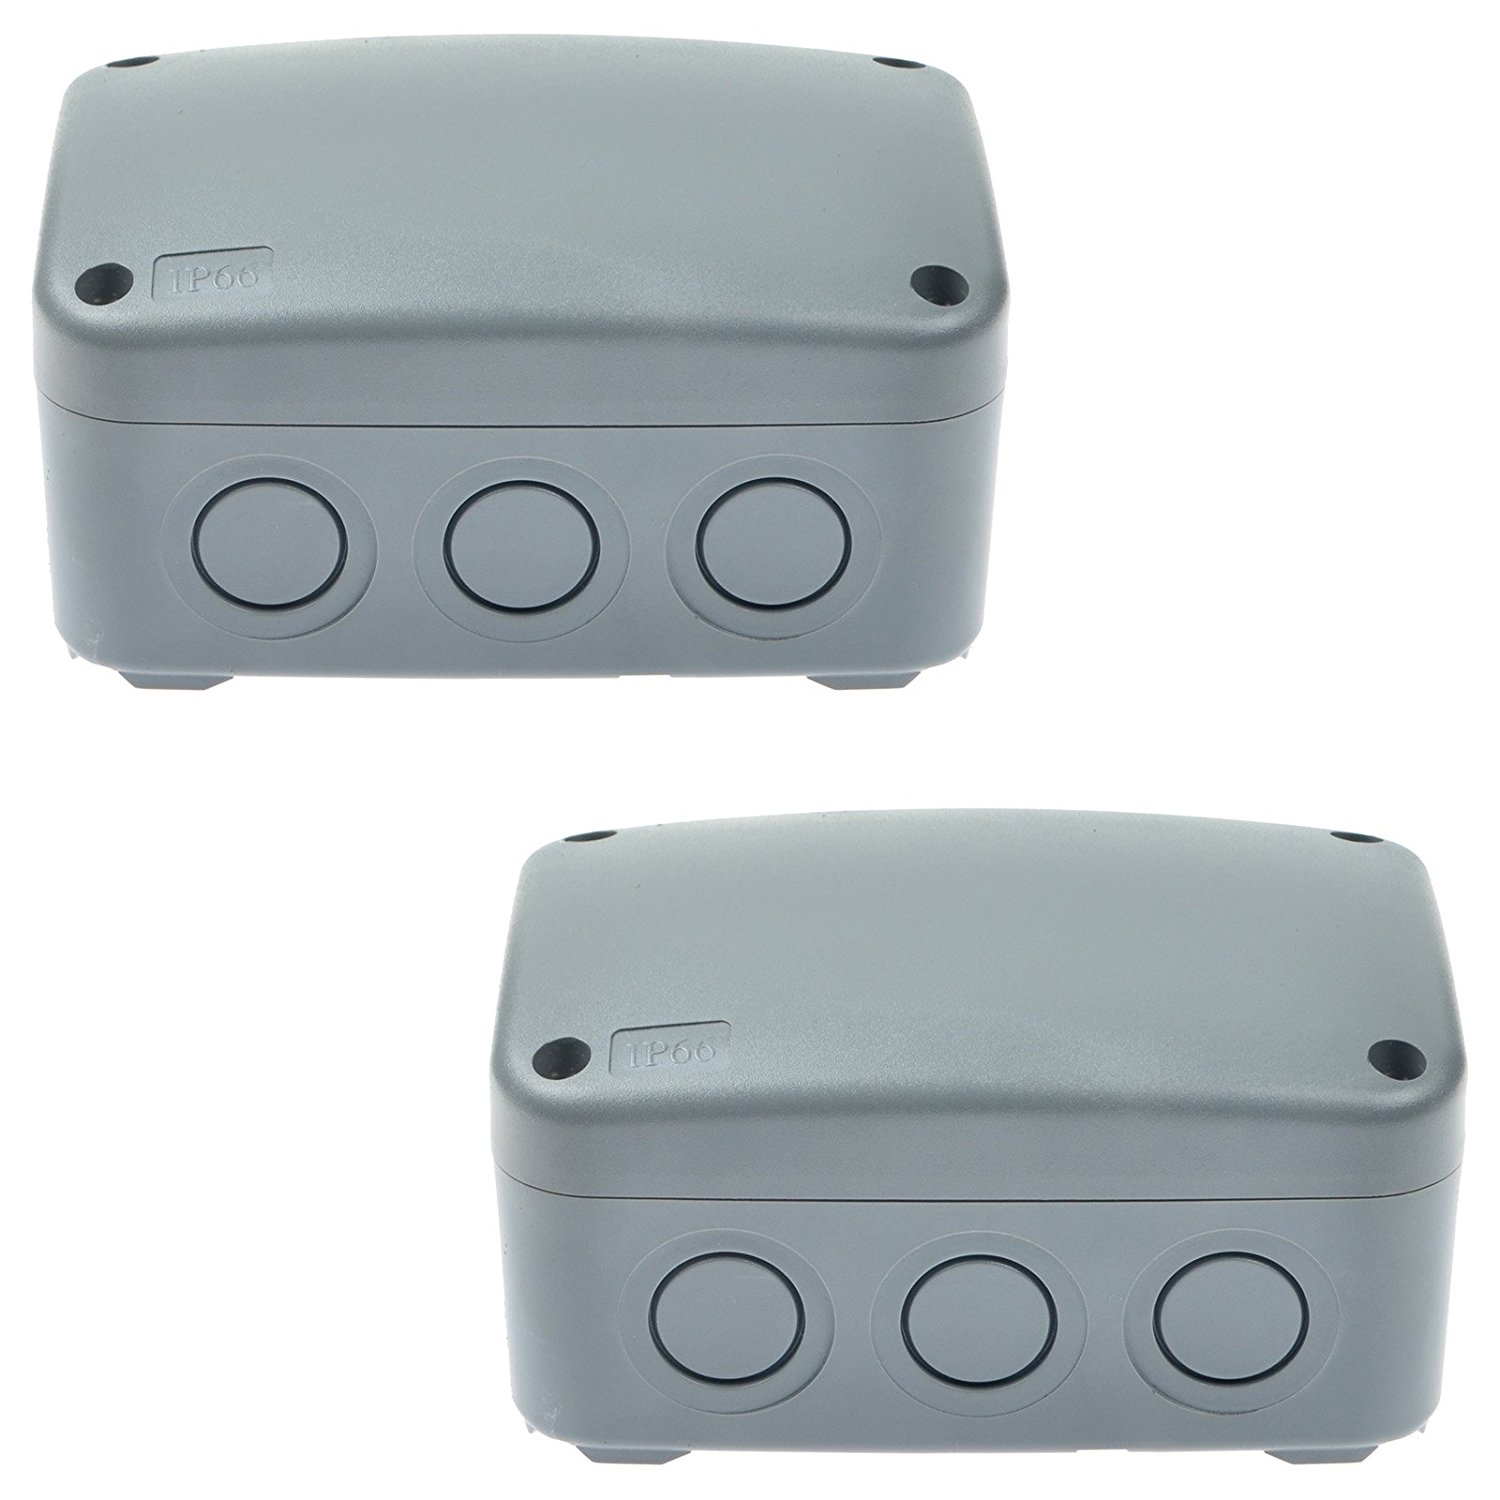 GREENCYCLE 2 Pack IP66 Rated Plastic Weatherproof Junction Box Fit for Outdoor Use, 1258662mm